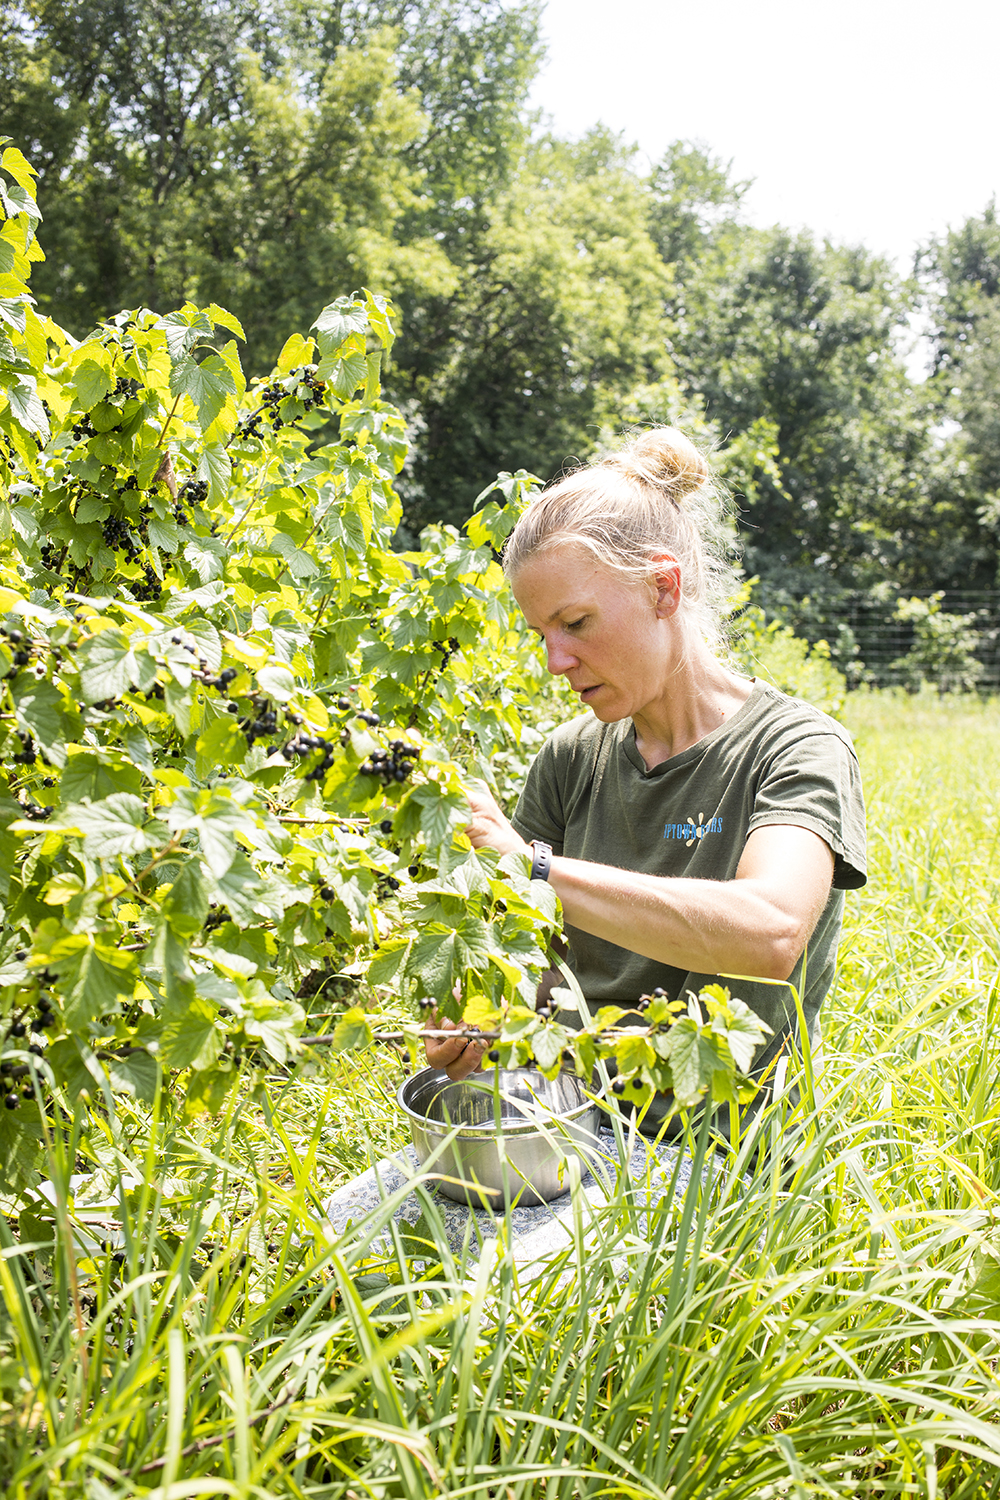 Tracy Jonkman, co-owner of Keepsake Cidery, picks black currants // Photo by Tj Turner